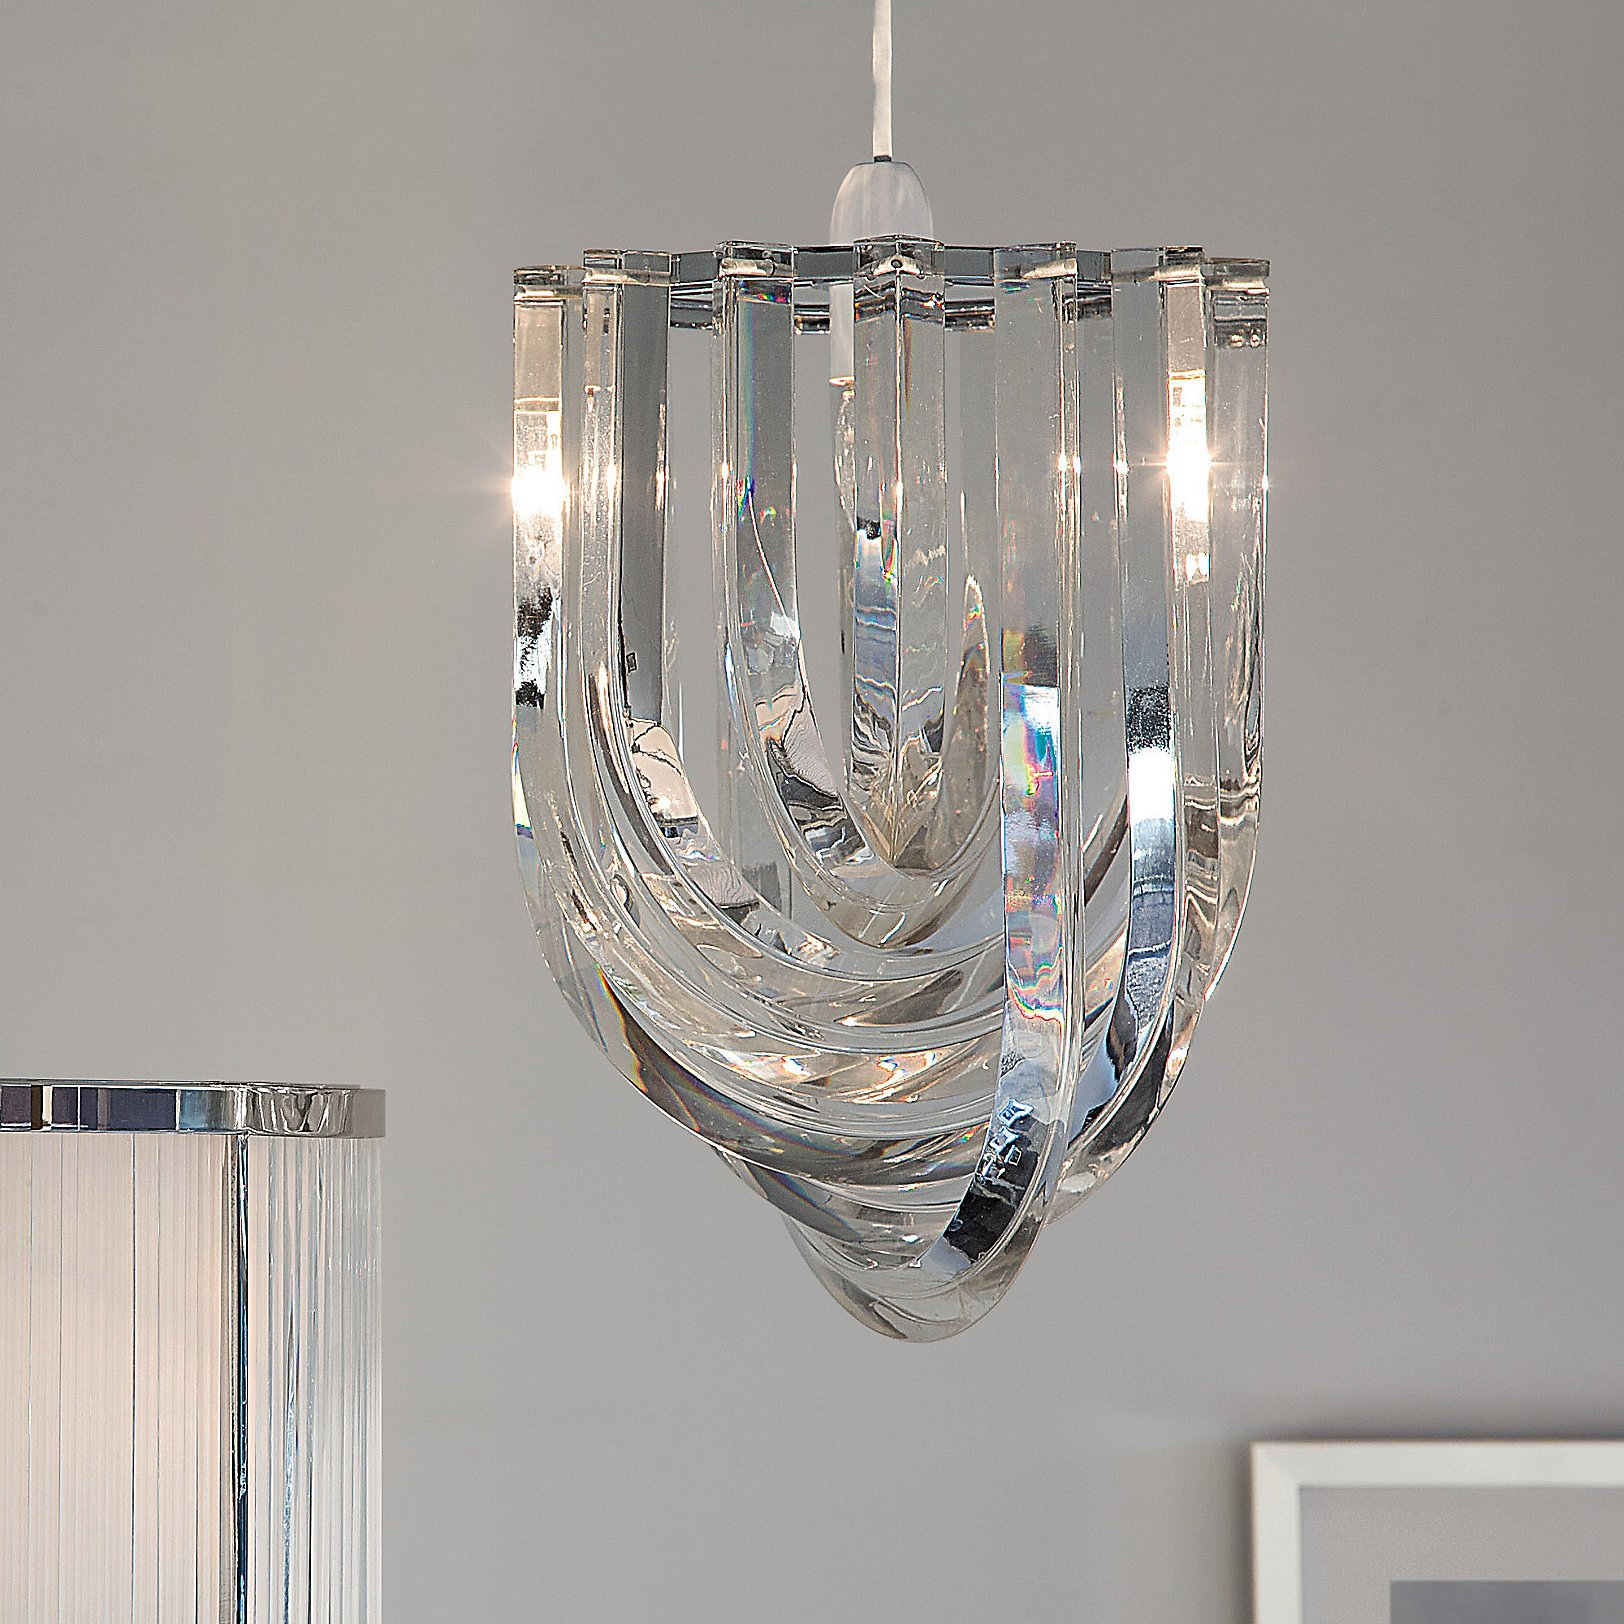 Glass Chandelier Shades | Glass Chandelier Shades | Replacement Globes for Ceiling Lights